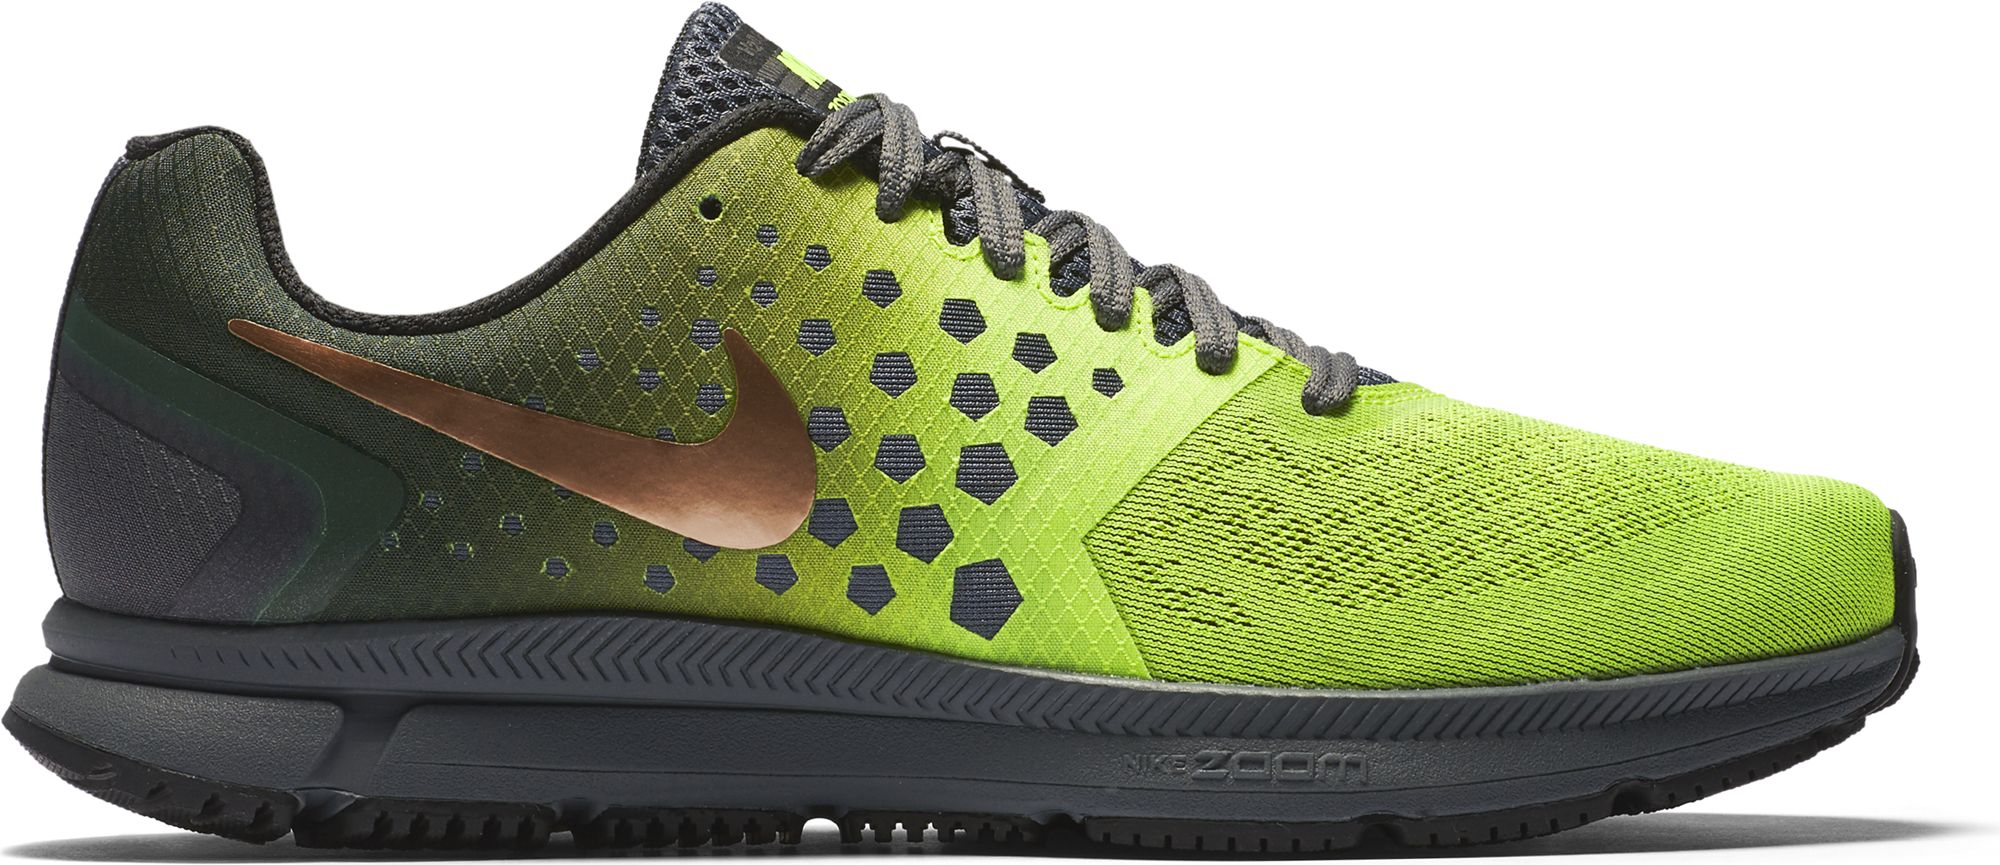 5a433a90af9c Nike AIR ZOOM SPAN SHIELD. Men s running shoes